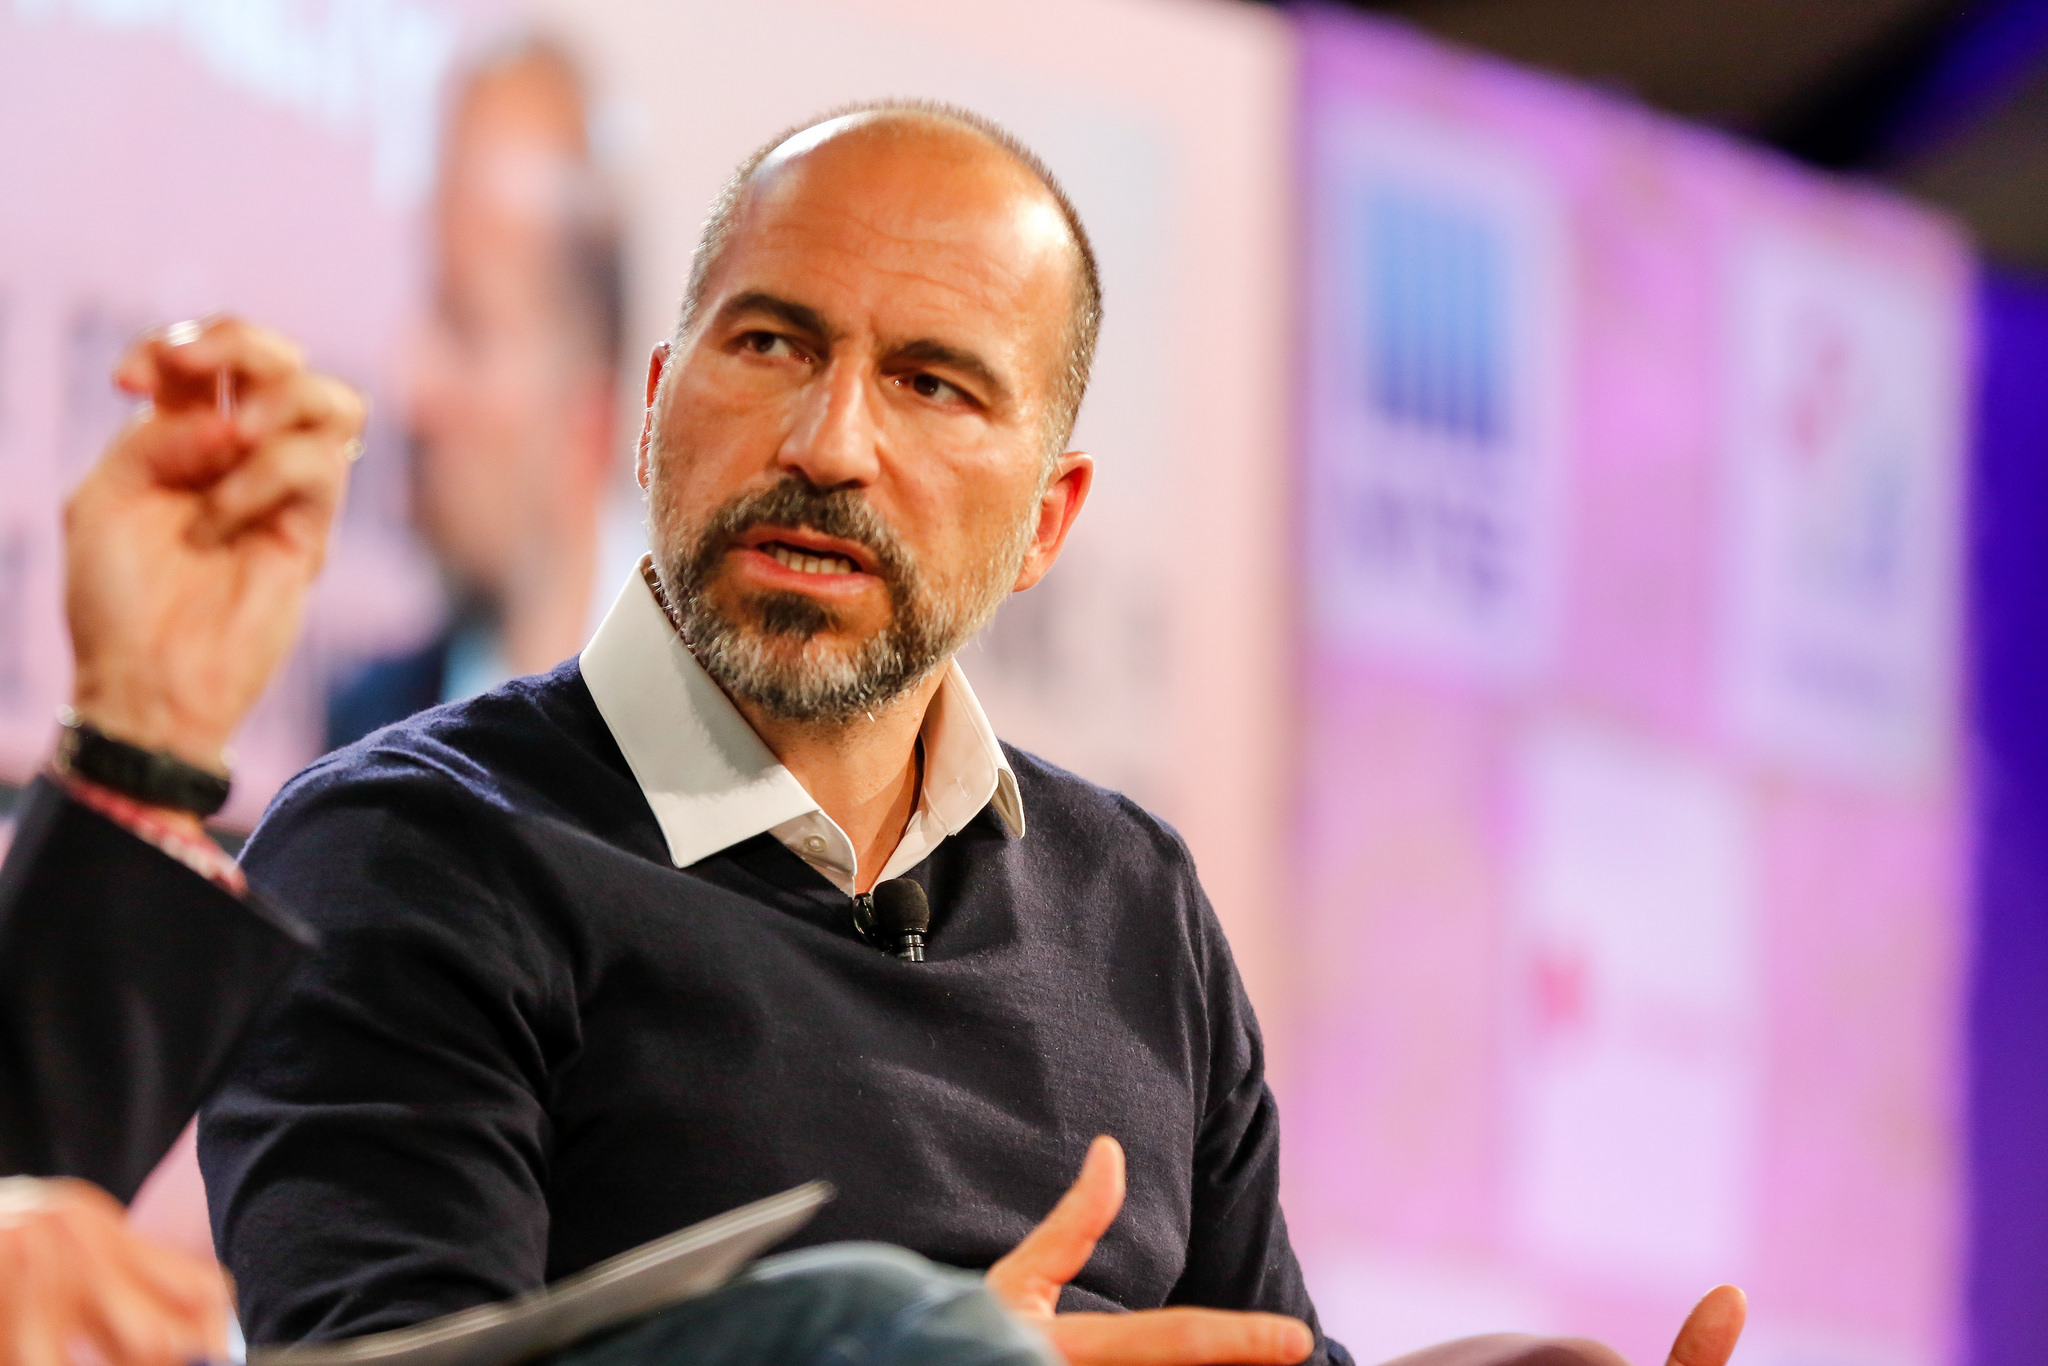 Uber CEO Dara Khosrowshahi at Fortune Brainstorm Tech 2018 in Aspen.